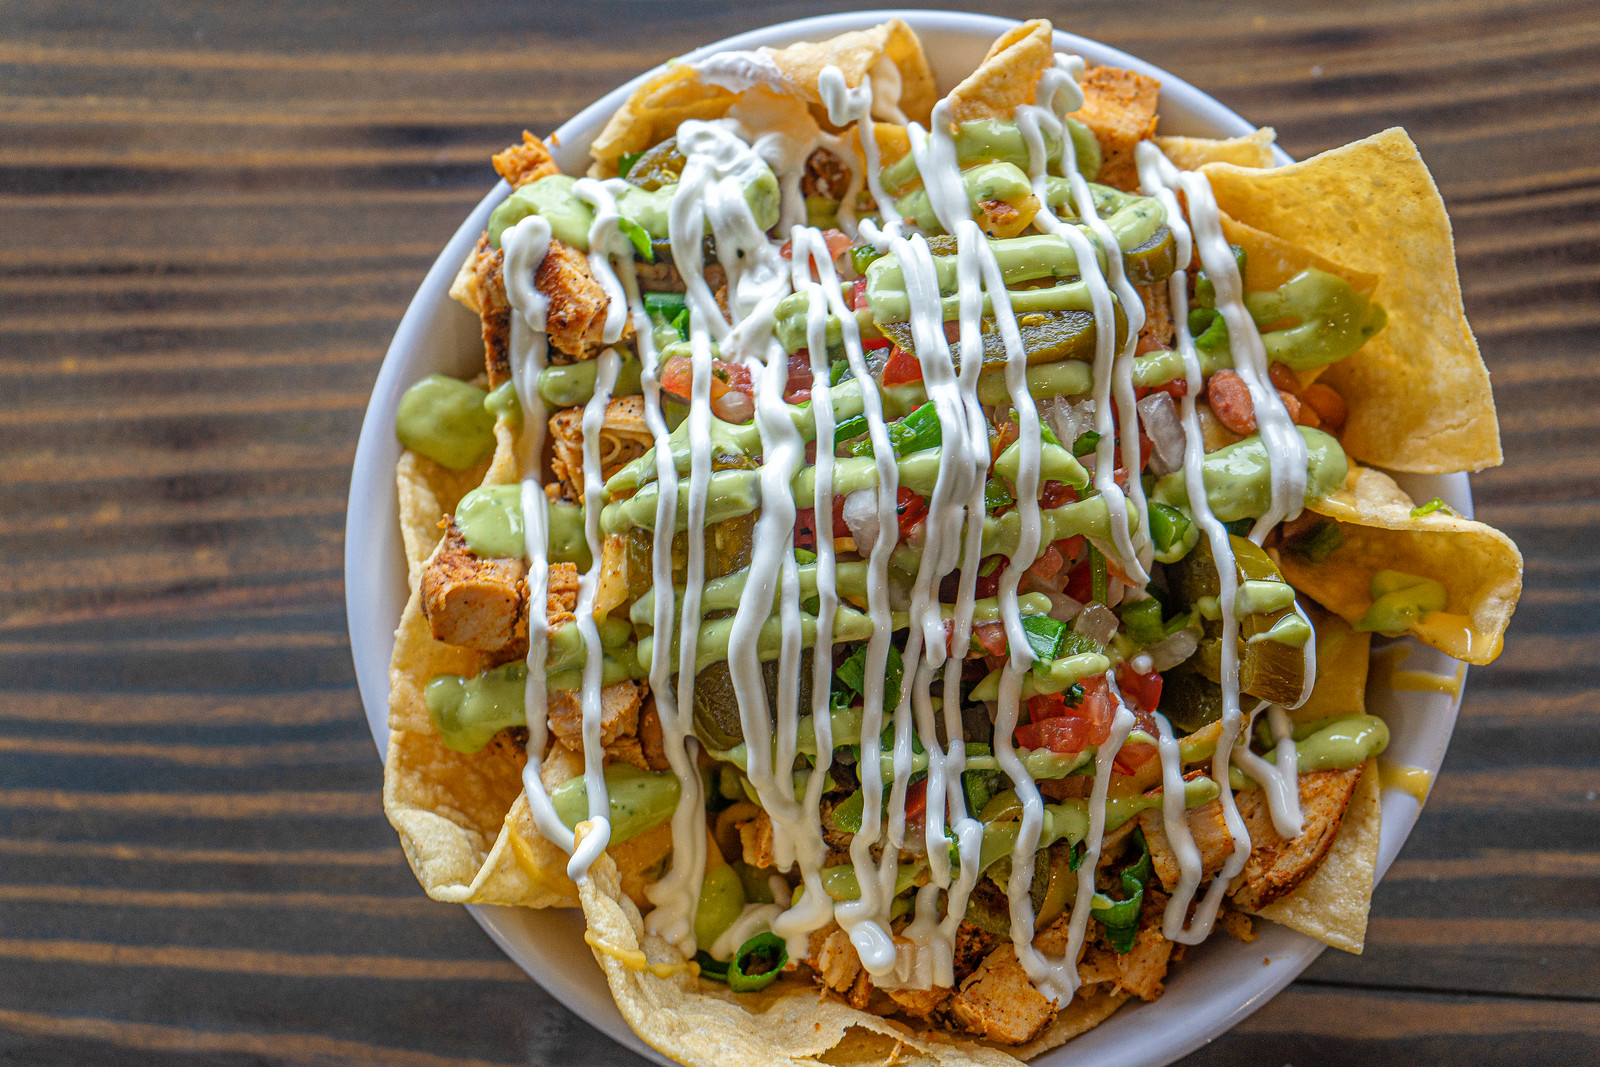 Tortilla Chips - The staple of our nachos, we take locally made corn tortillas and fry them in house. They are durable and can handle anything you pile on top!